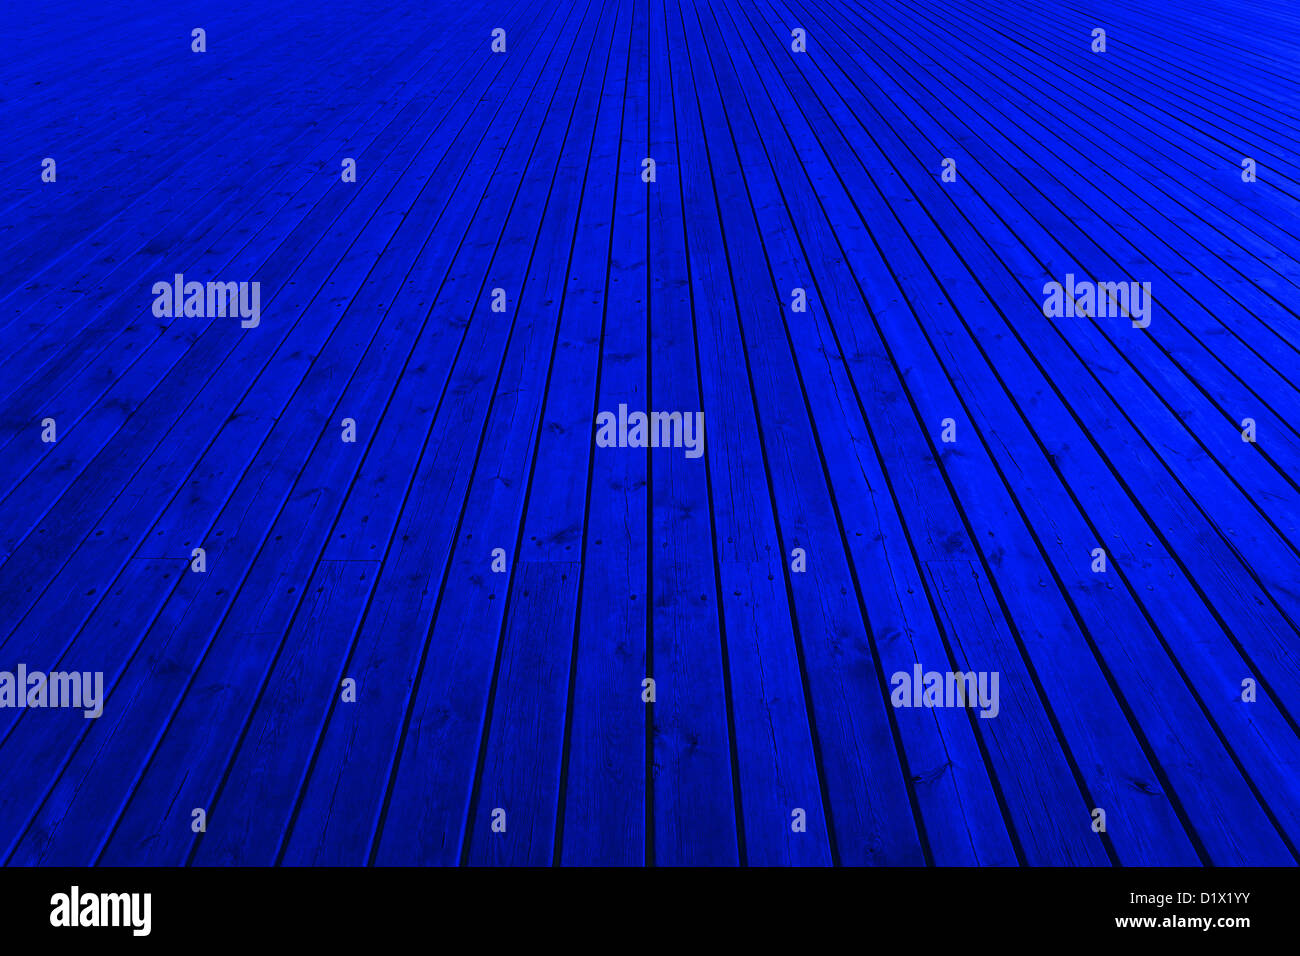 Wooden blue planks - High quality texture. - Stock Image